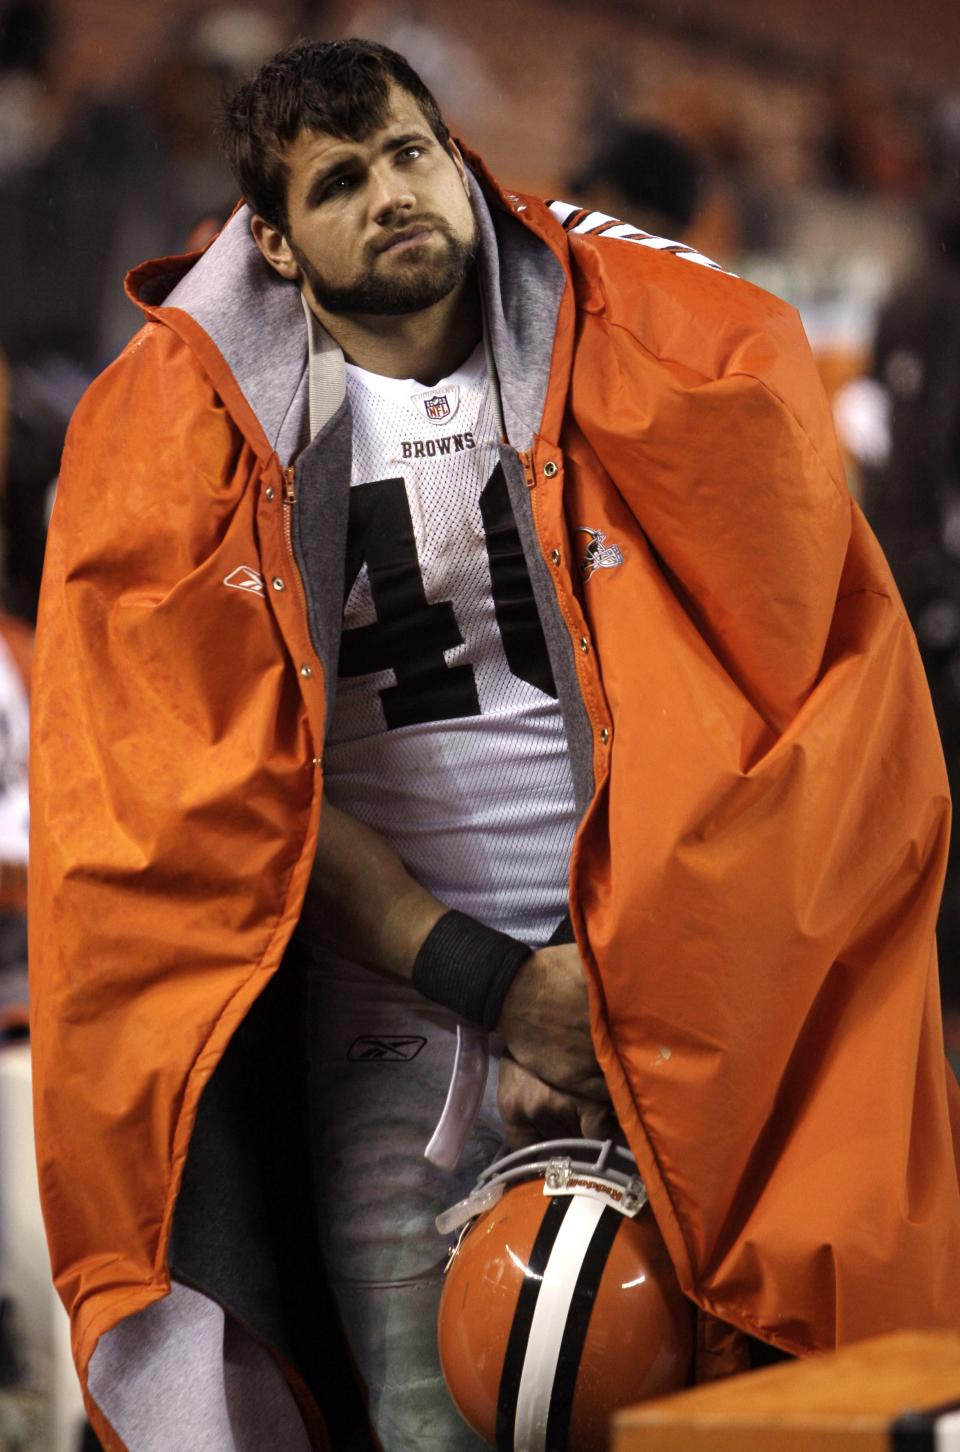 Cleveland Browns running back Peyton Hillis watches during the final minutes of the Browns' 24-10 loss to the Baltimore Ravens in an NFL football game on Sunday, Dec. 4, 2011, in Cleveland. (AP Photo/Tony Dejak)